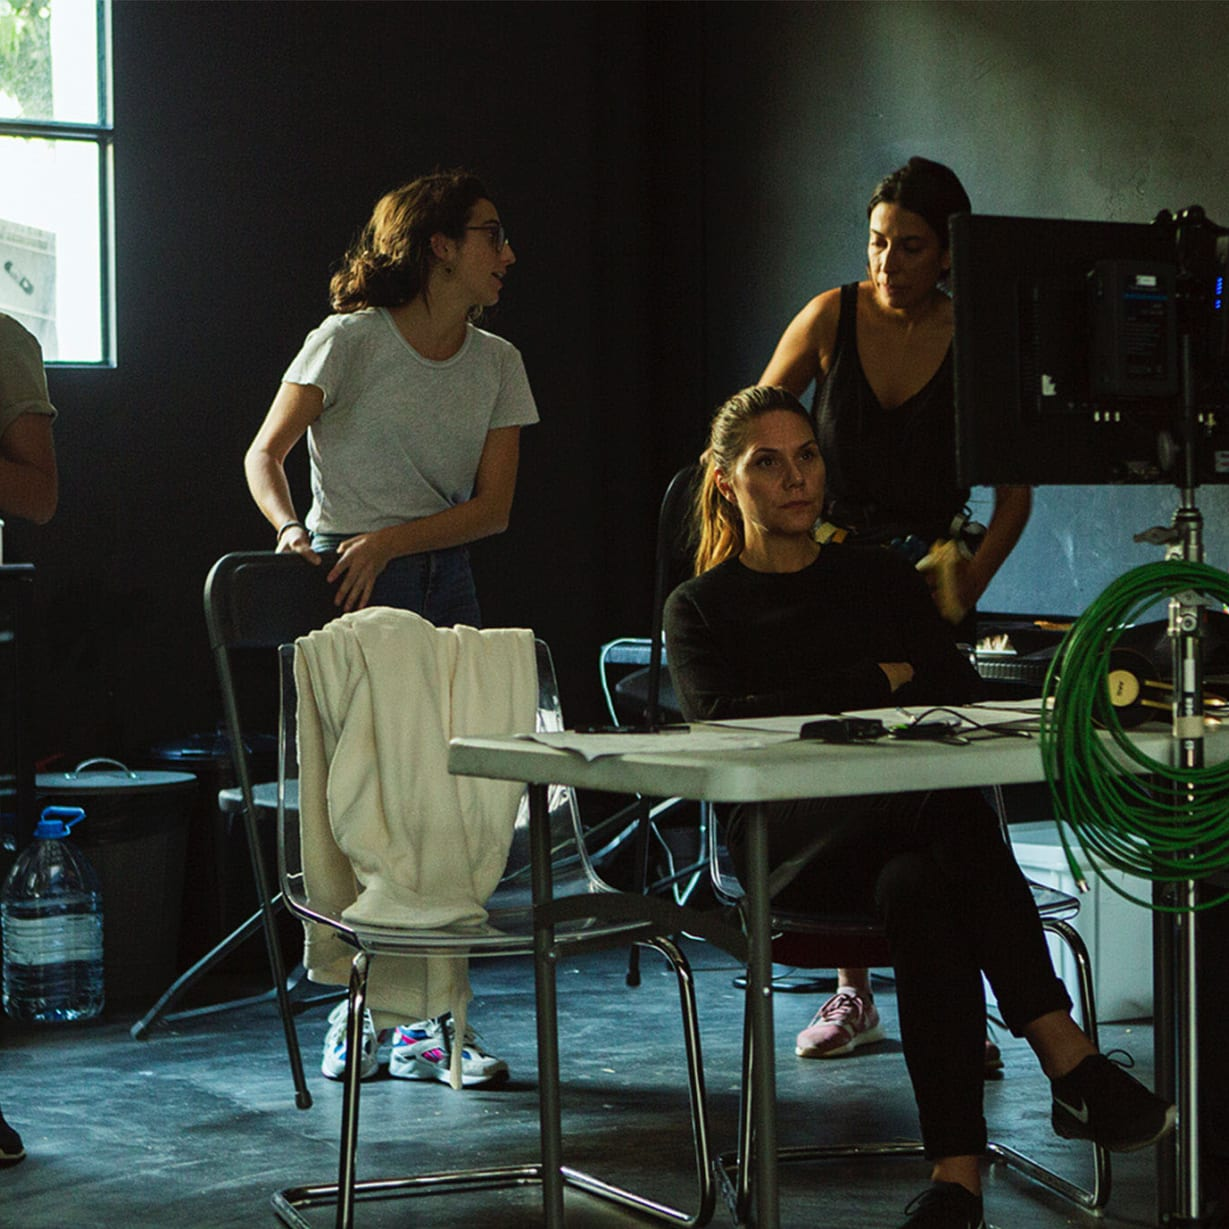 group of women behind directing table with camera equipment